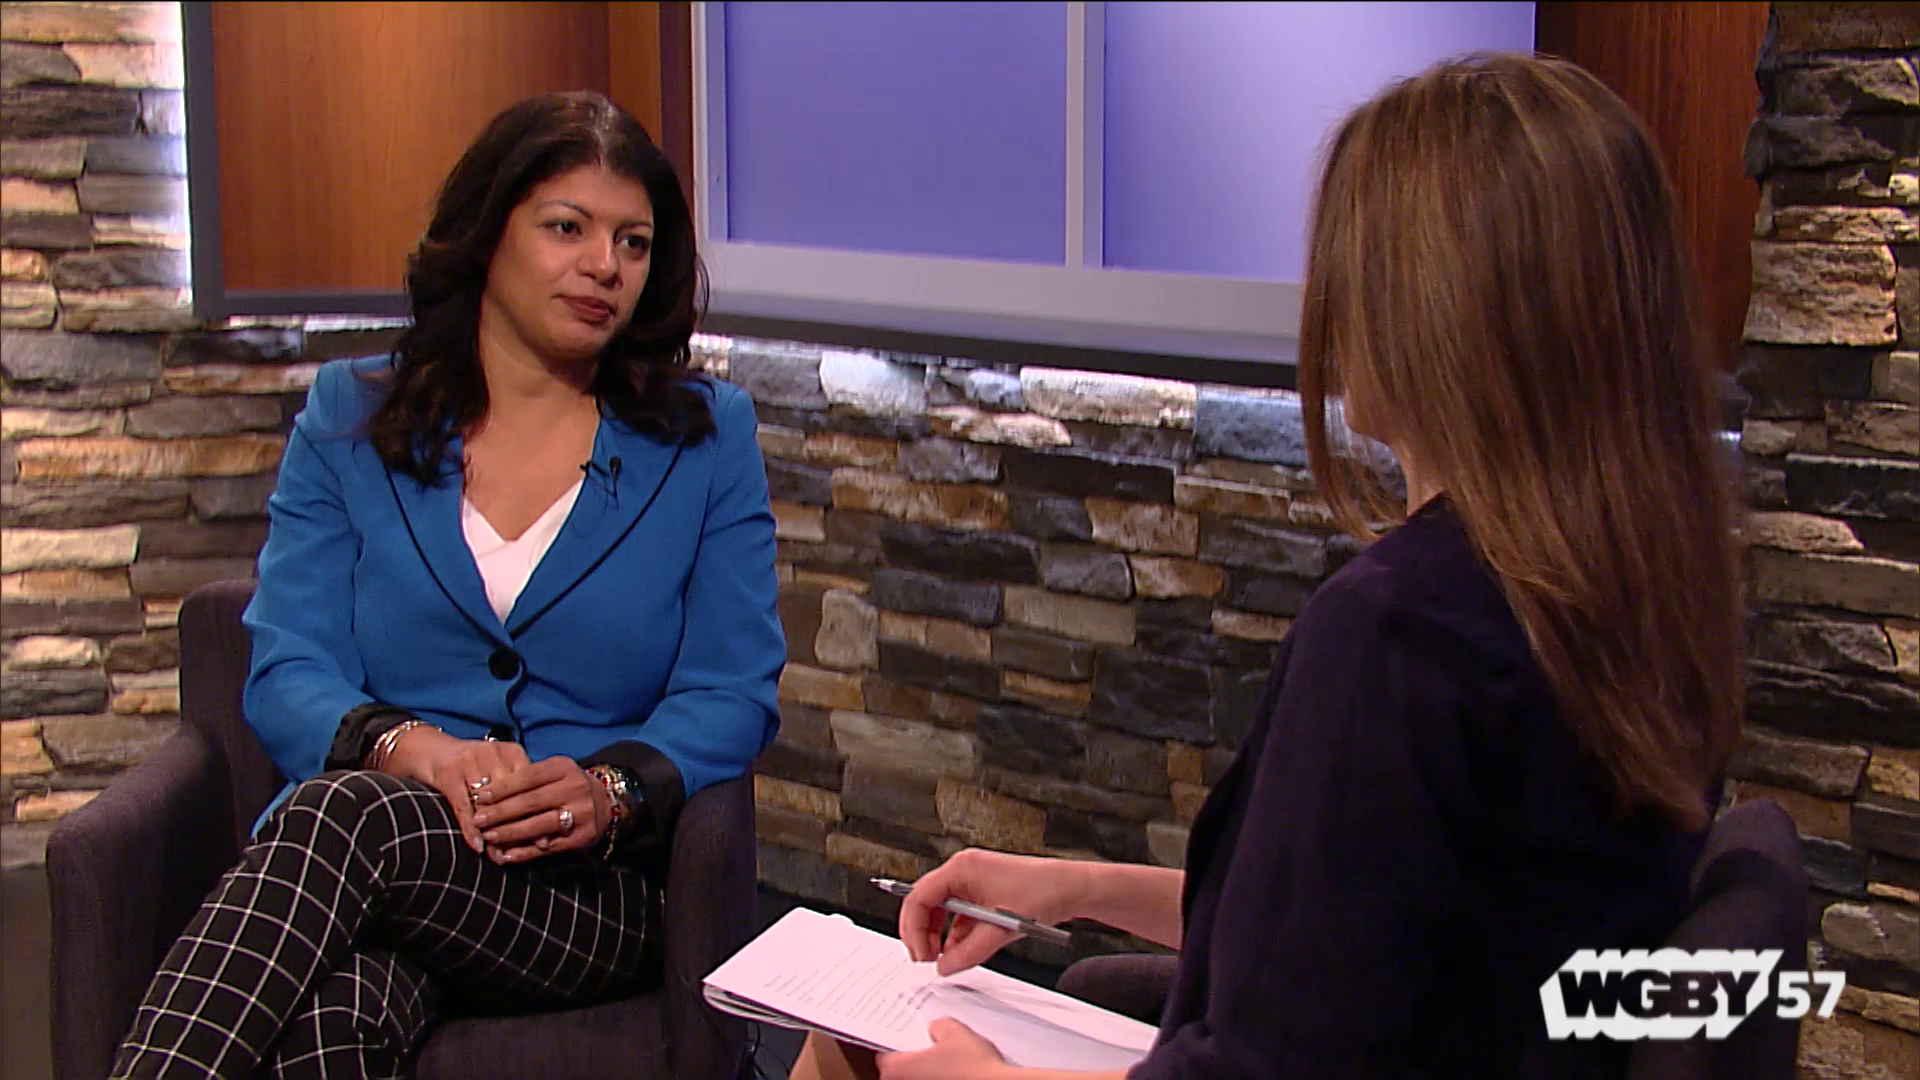 Waleska Lugo-DeJesús, Project Director of the Healing Racism Institute of Pioneer Valley, discusses how the organization helps leaders throughout the region to understand the root causes of racism. The Institute also facilitates personal and organizational strategies designed to overcome the impact of racial bias.